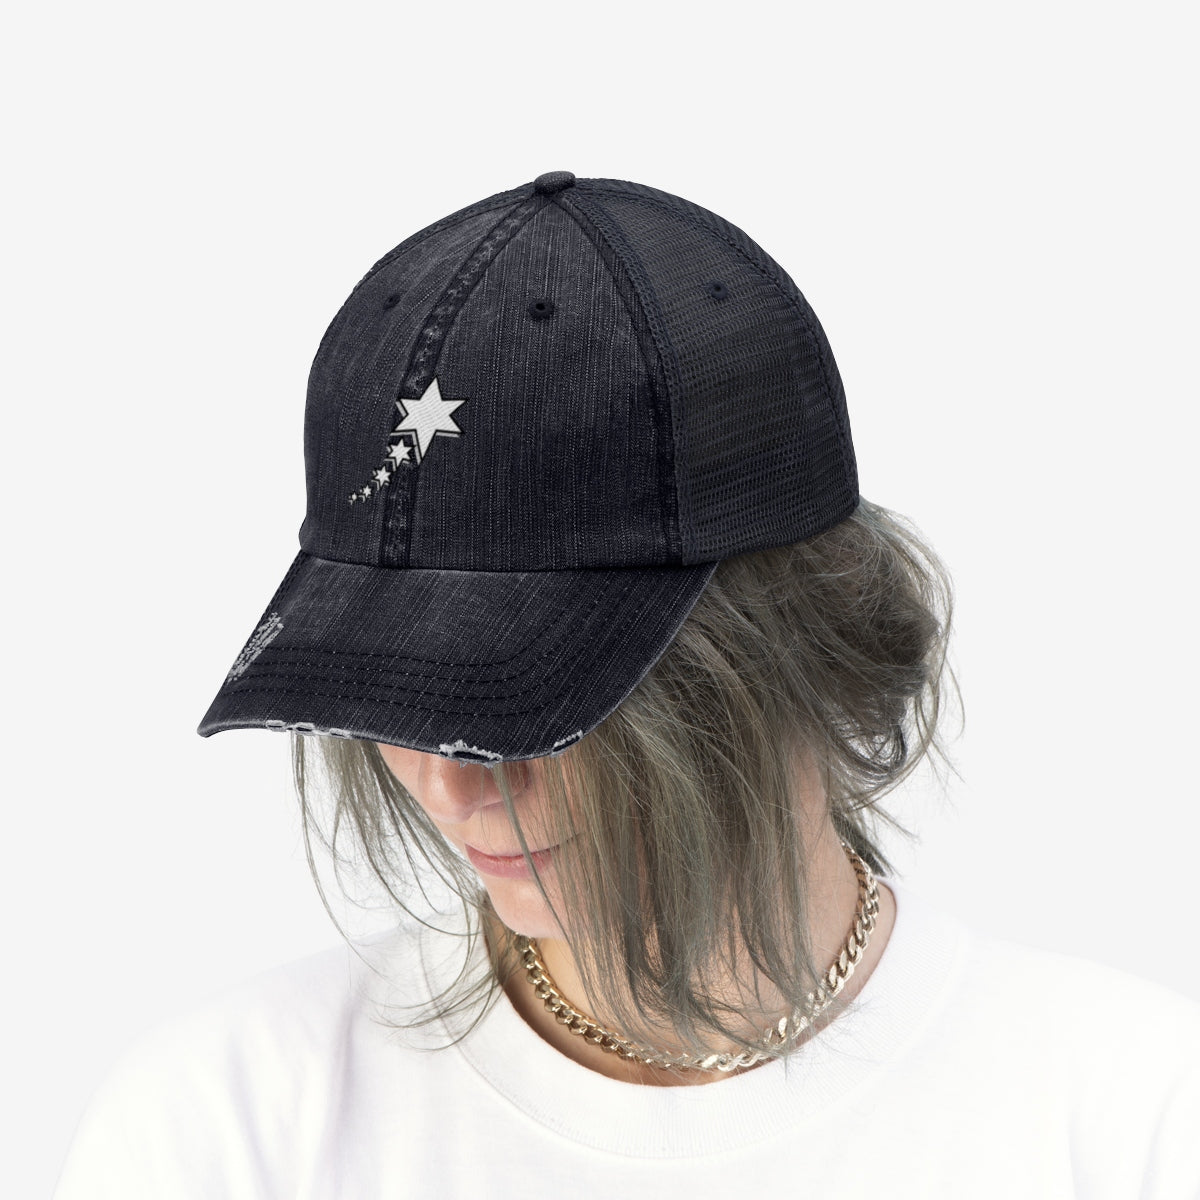 Unisex Trucker Hat - 6 Points 5 Stars (White)